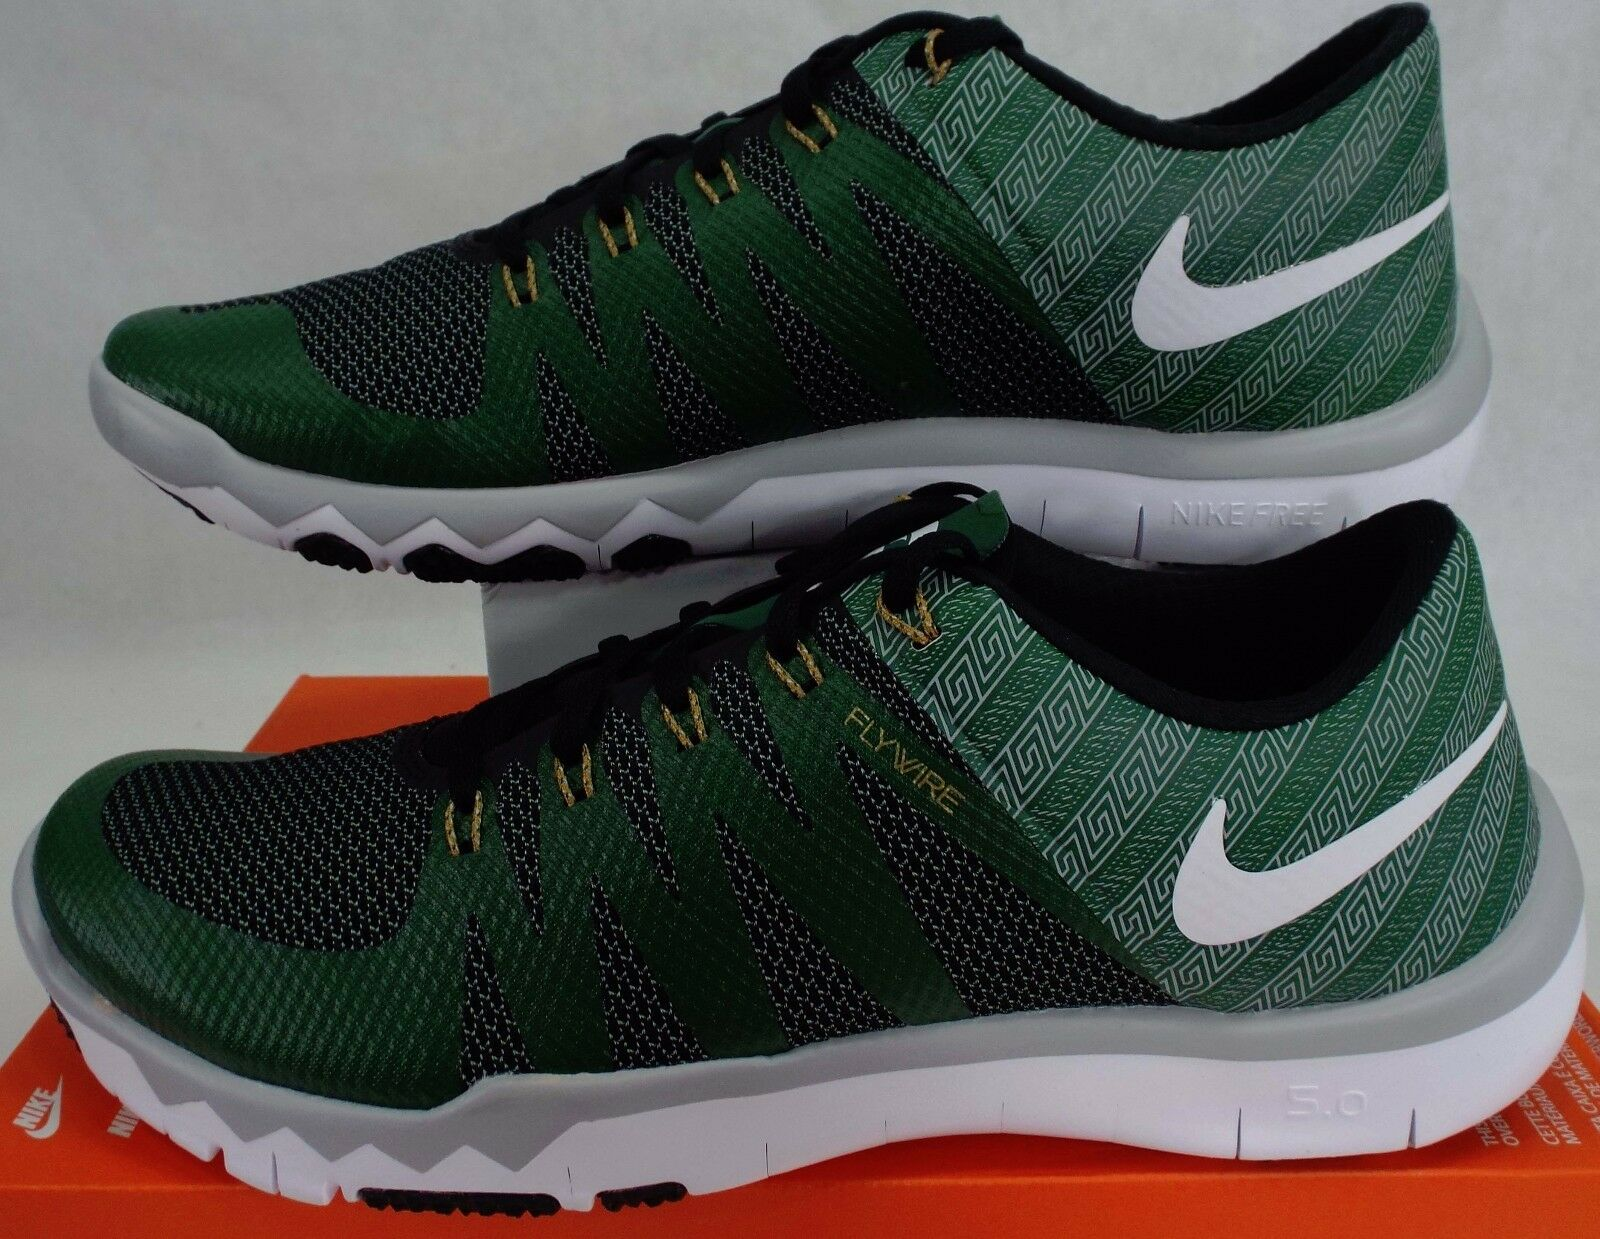 Comfortable and good-looking New Mens 8 NIKE Free Trainer 5.0 V6 AMP Michigan State Shoes Price reduction